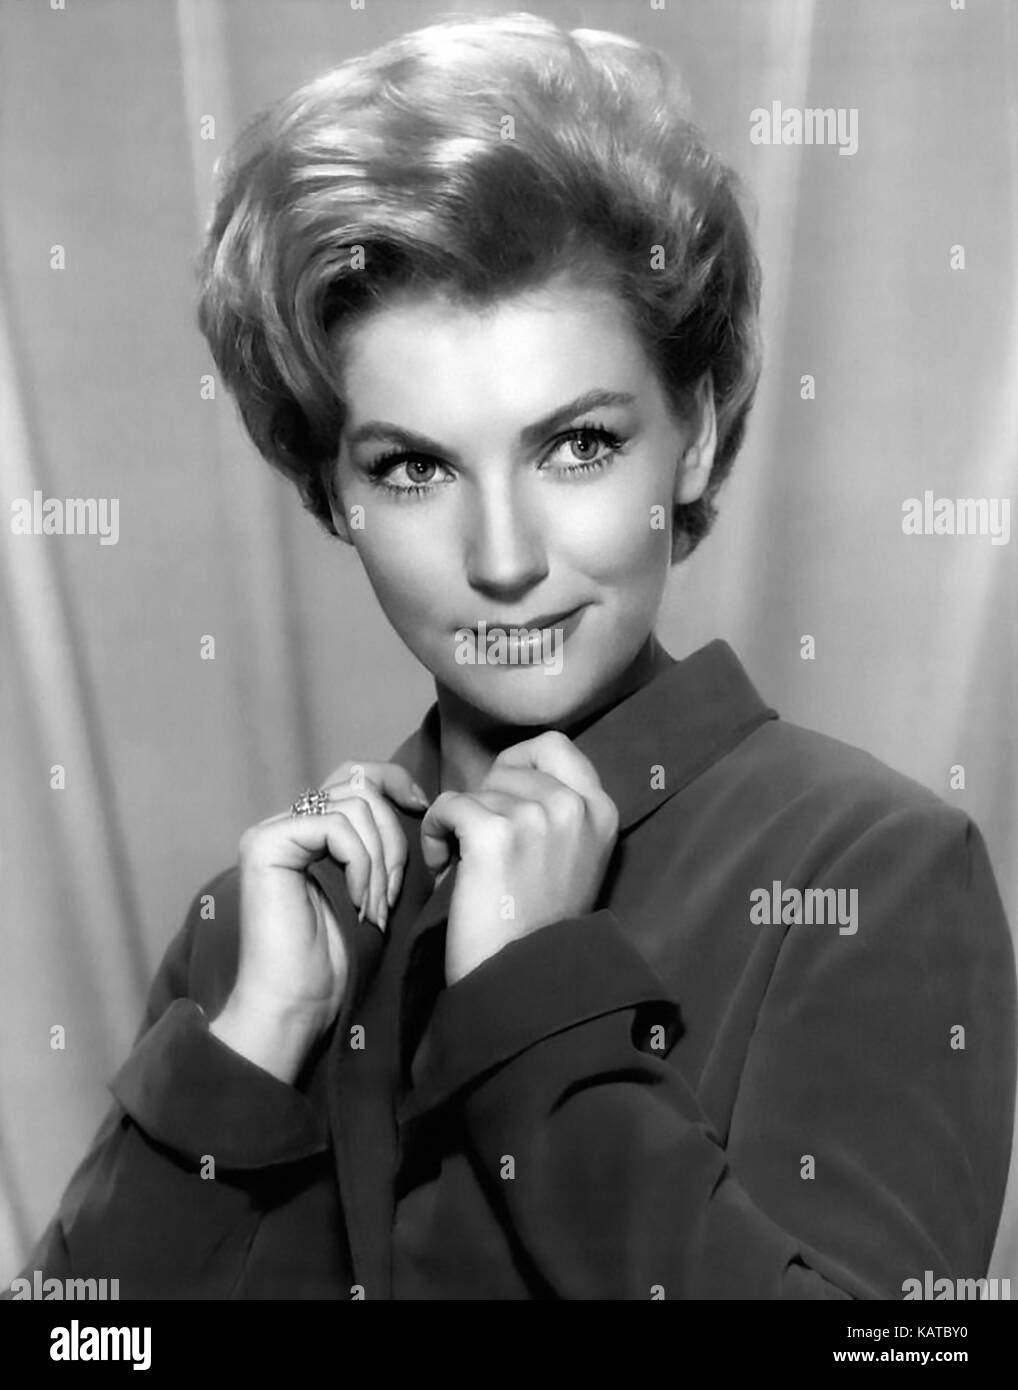 Rosemary Harris (born 1927 (naturalized American citizen) Rosemary Harris (born 1927 (naturalized American citizen) new images